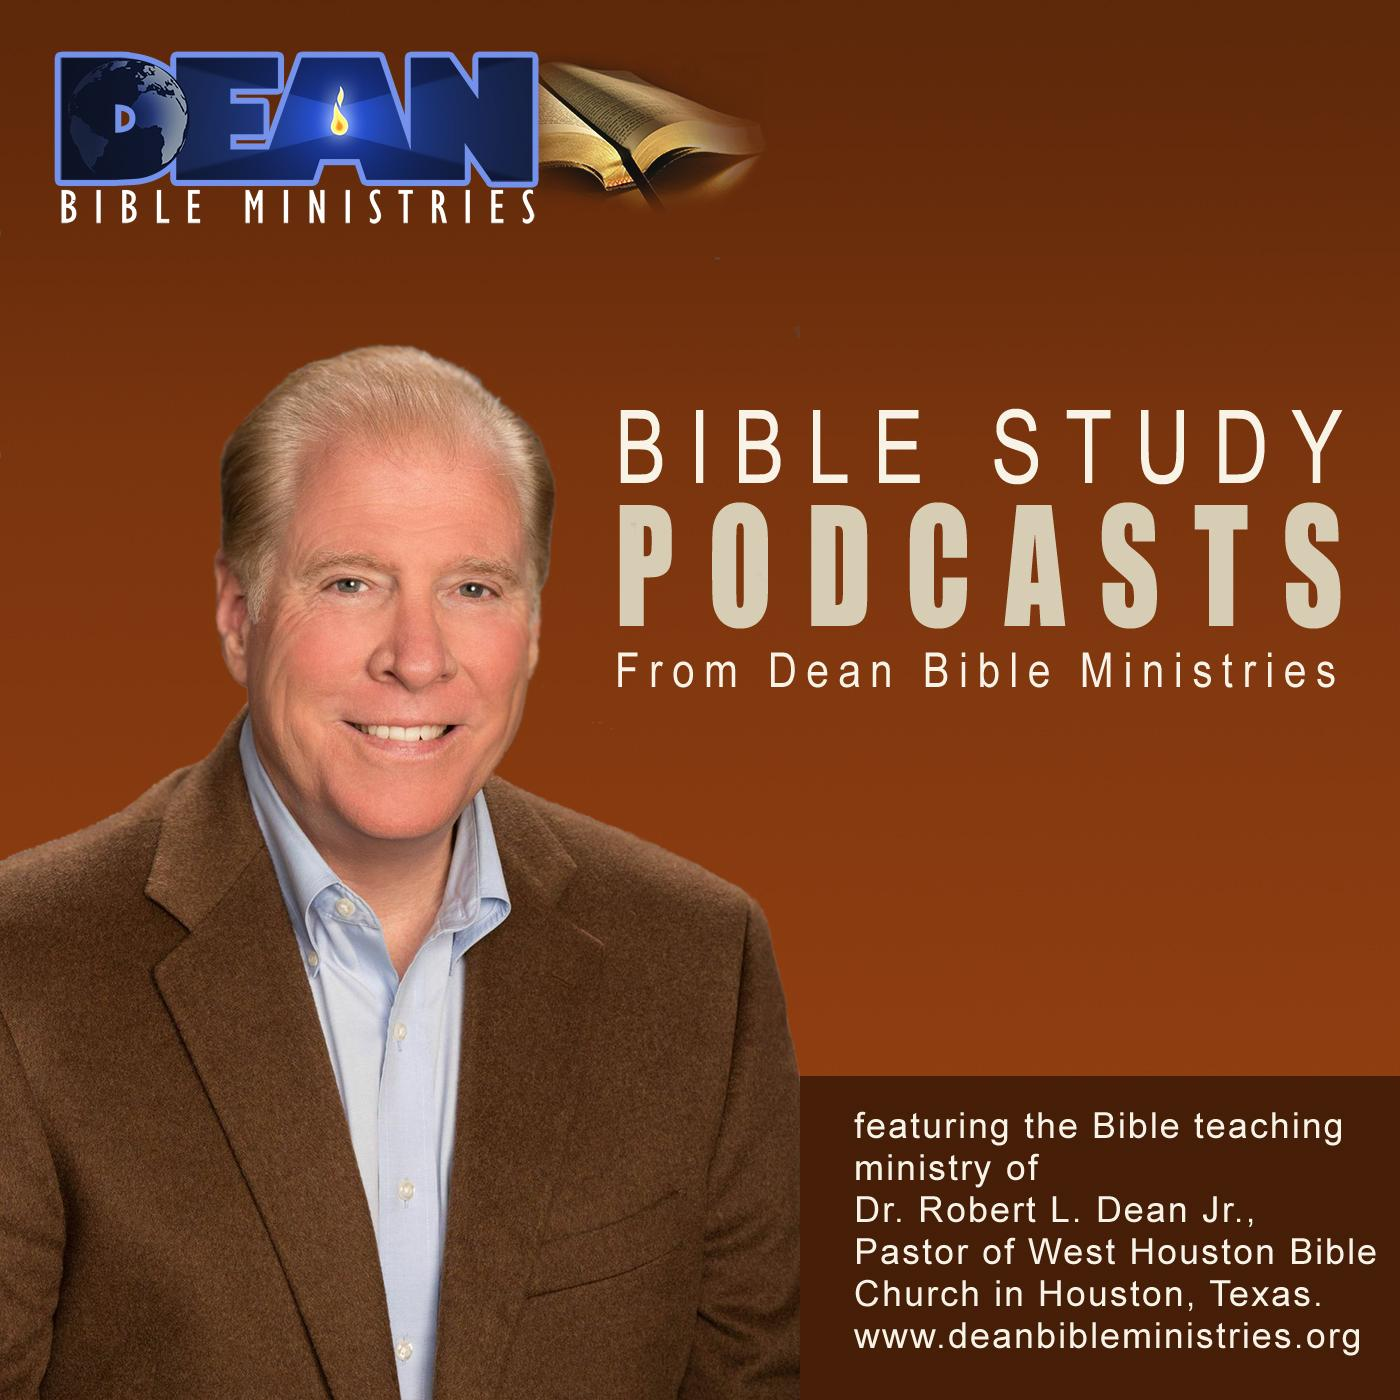 All Current Classes From Dean Bible Ministries